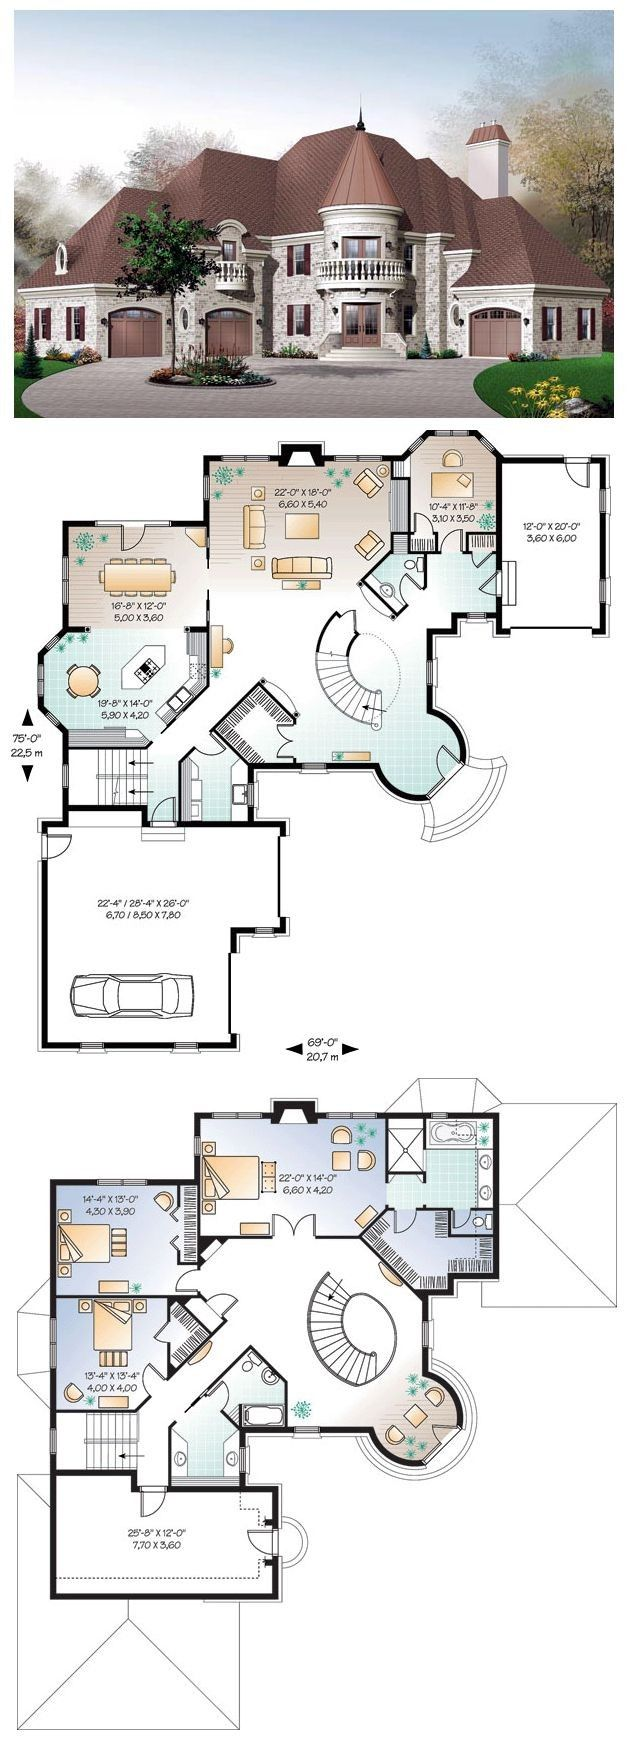 21 Awesome Pics Of Luxury Castle Floor Plans Check More At Http Www Psyrk Us Luxury Castle Floor P Victorian House Plans House Plans Mansion House Blueprints